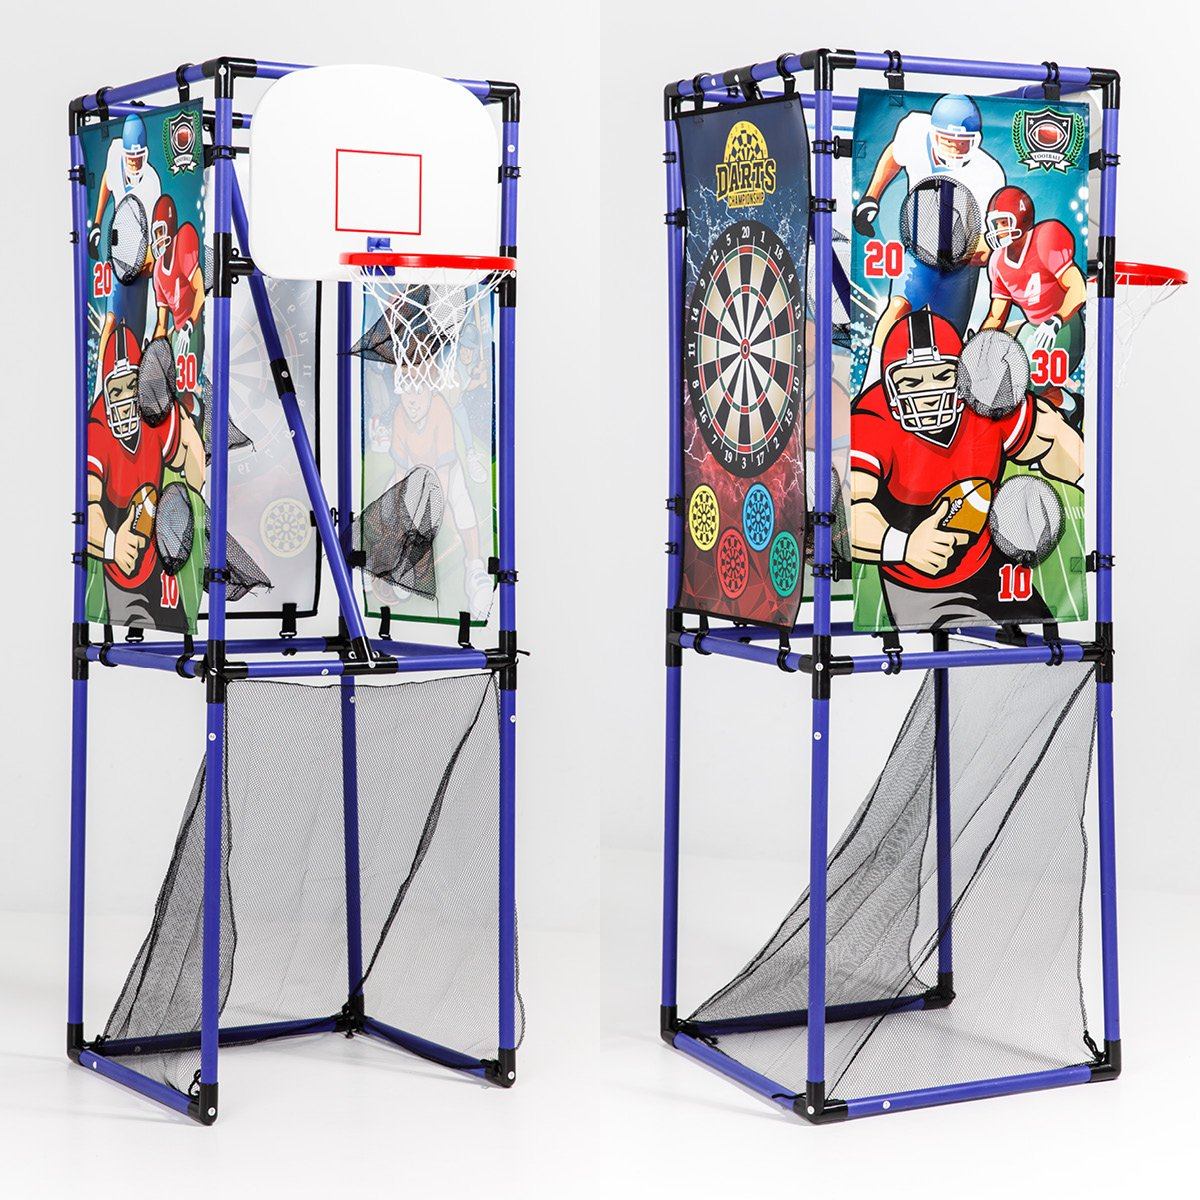 Sport Squad 5-in-1 Multi-Sport Kid's Game Set – Features Baseball, Basketball, Football, Soccer, Darts – Great for Indoor and Outdoor Play by Sport Squad (Image #2)